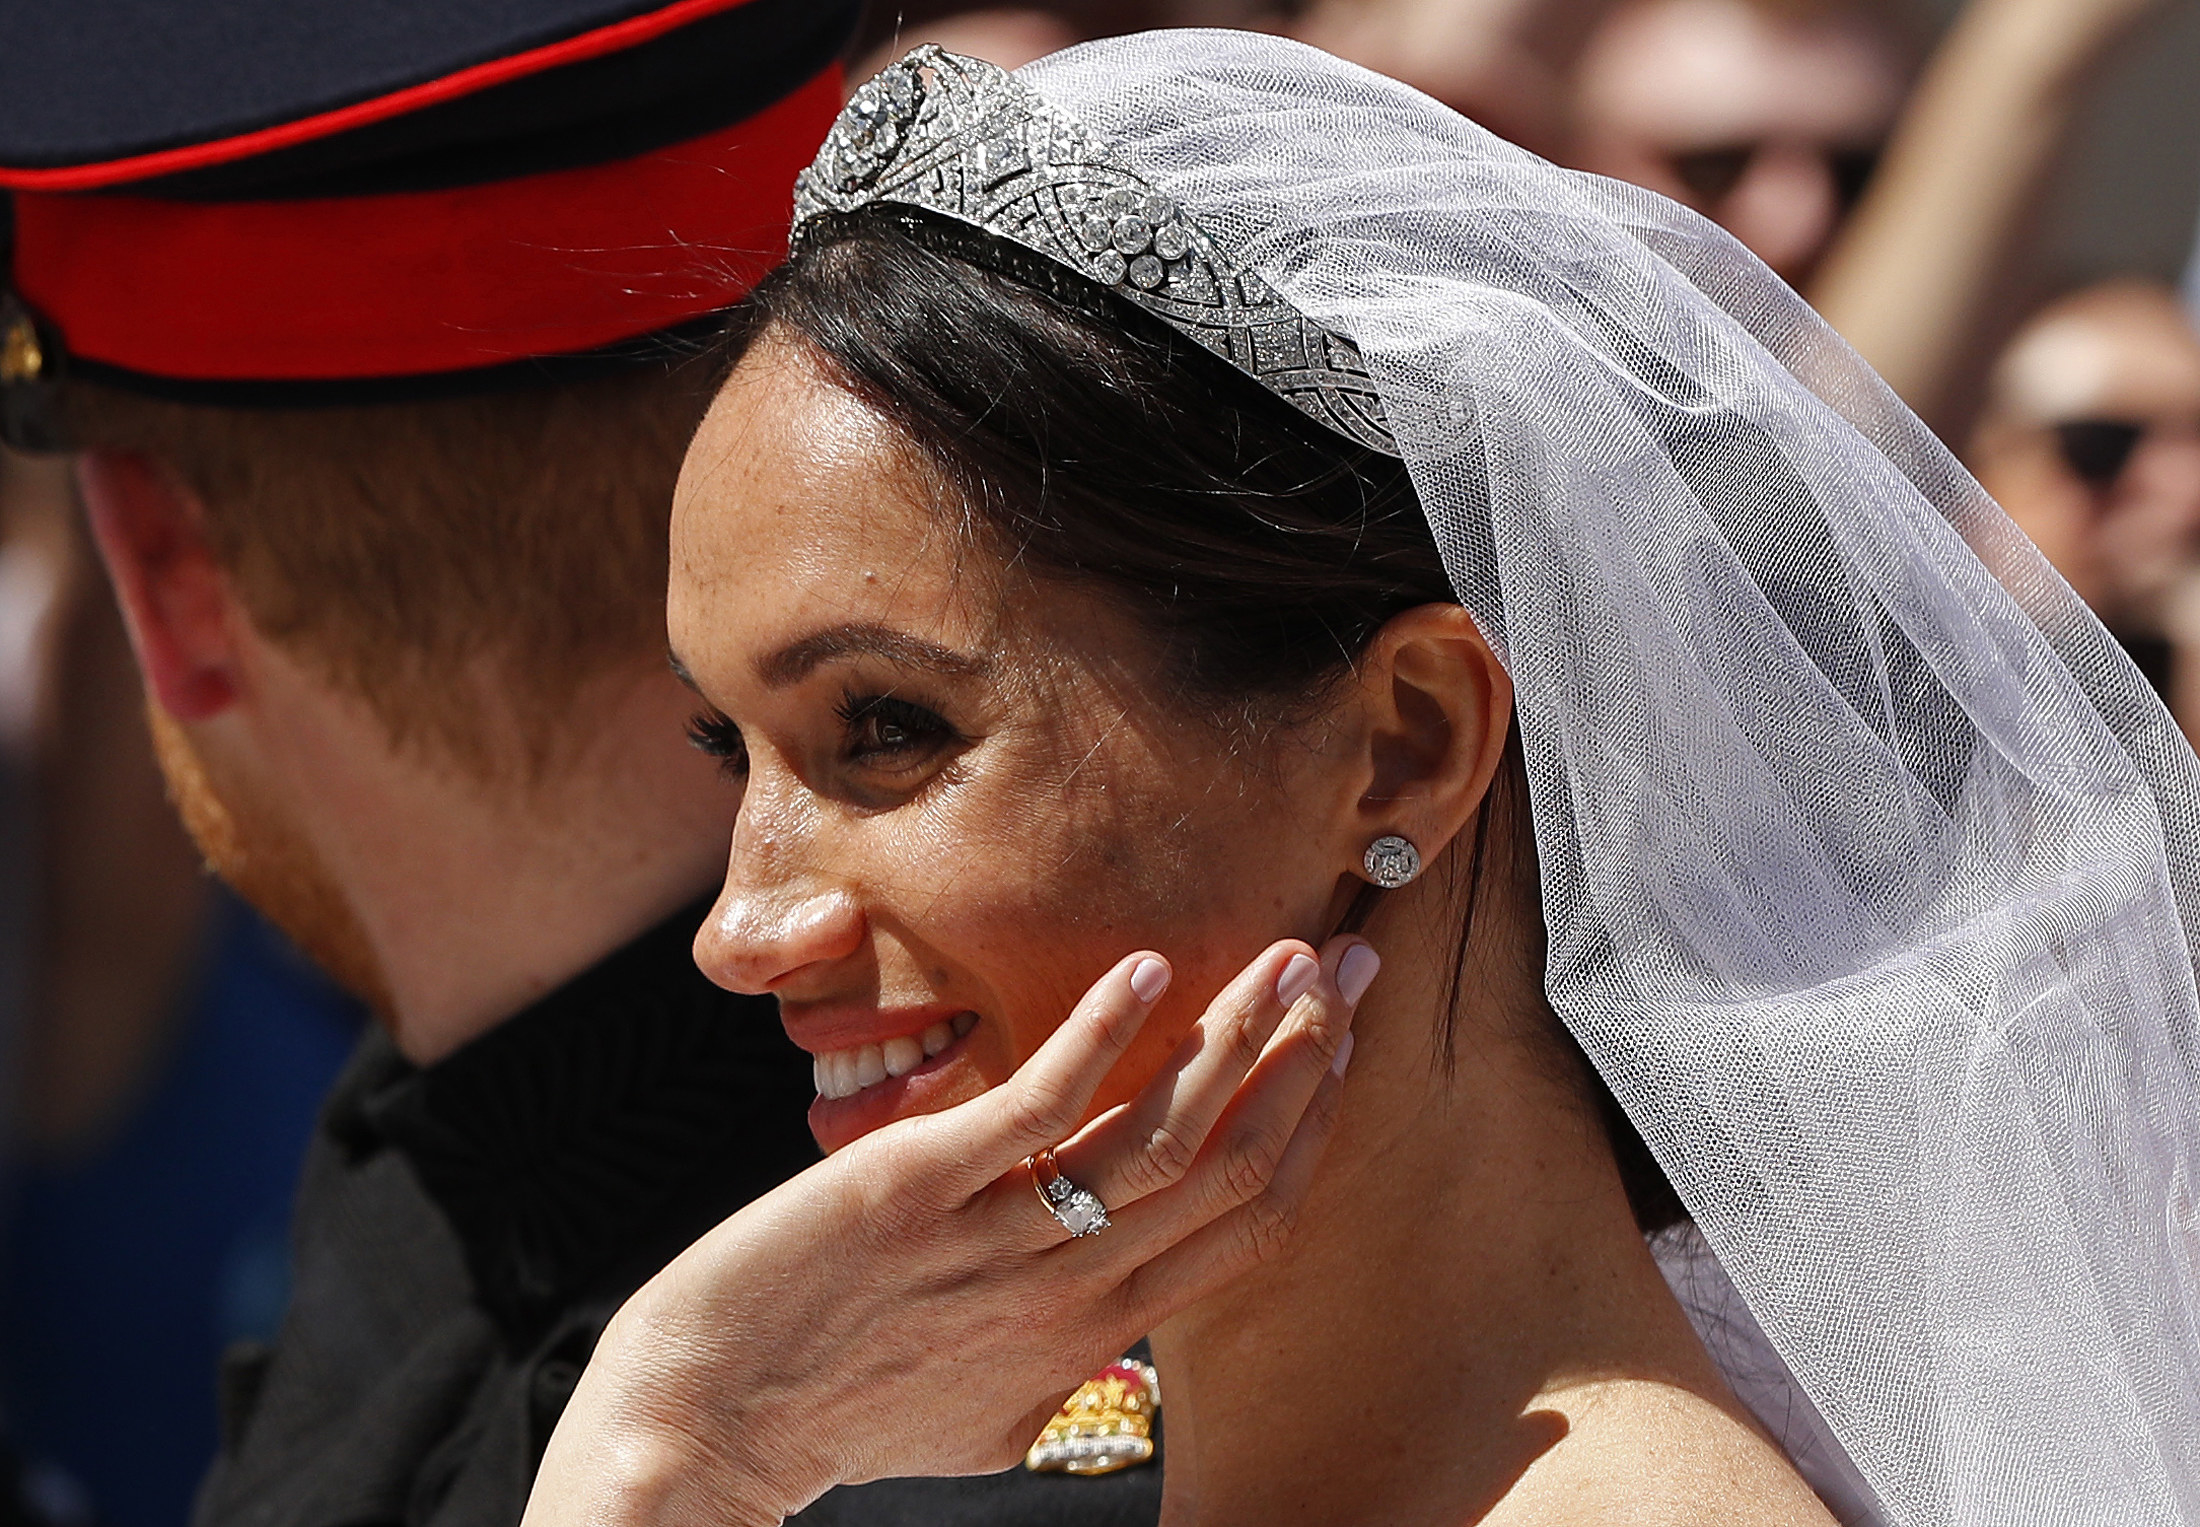 A close up of the Duchess of Sussex, showing her tiara, and engagement ring.